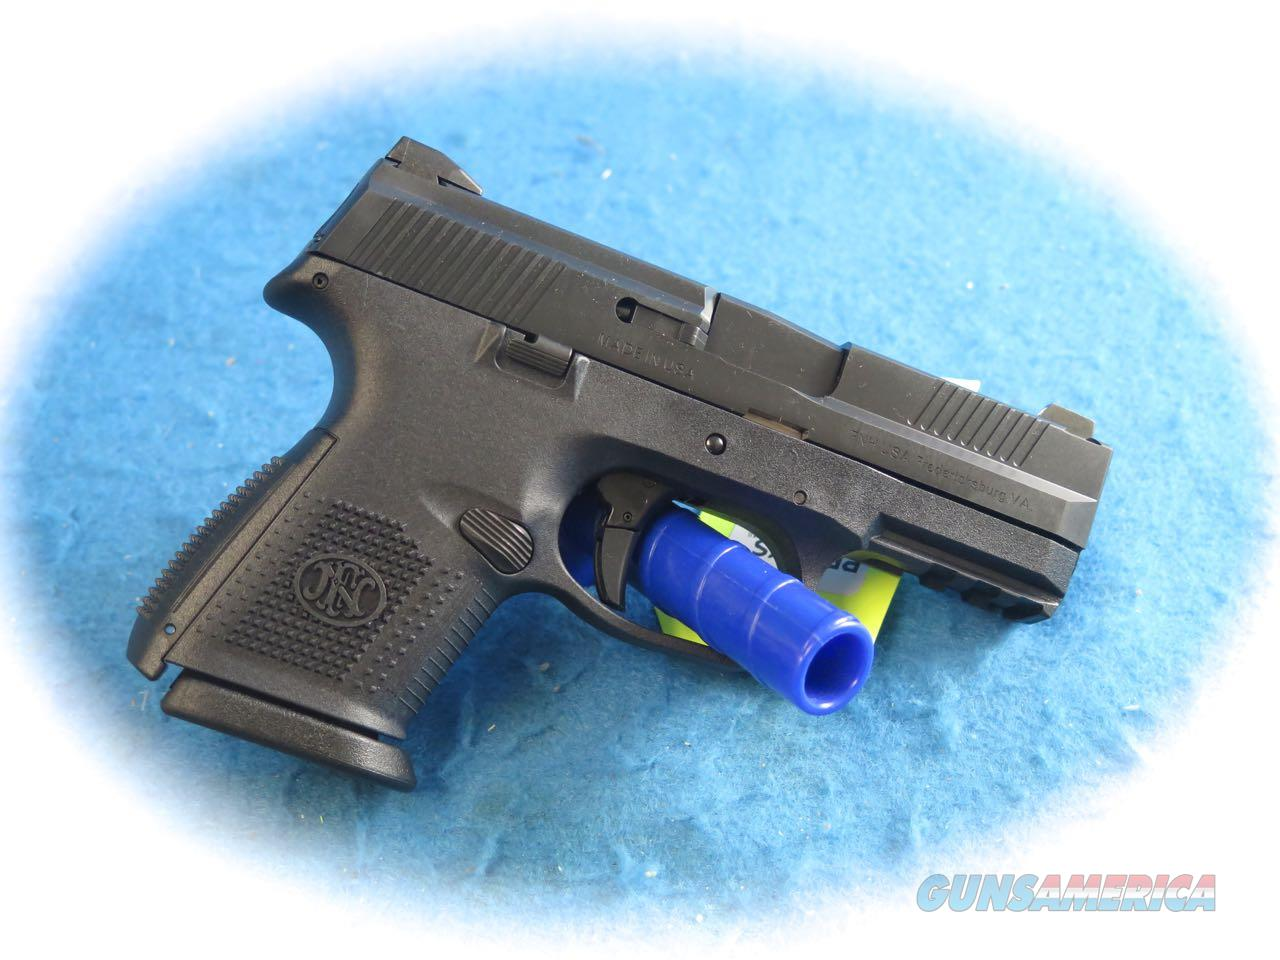 FN FNS 9 Compact 9mm Pistol W/ NS **New**  Guns > Pistols > FNH - Fabrique Nationale (FN) Pistols > FNS